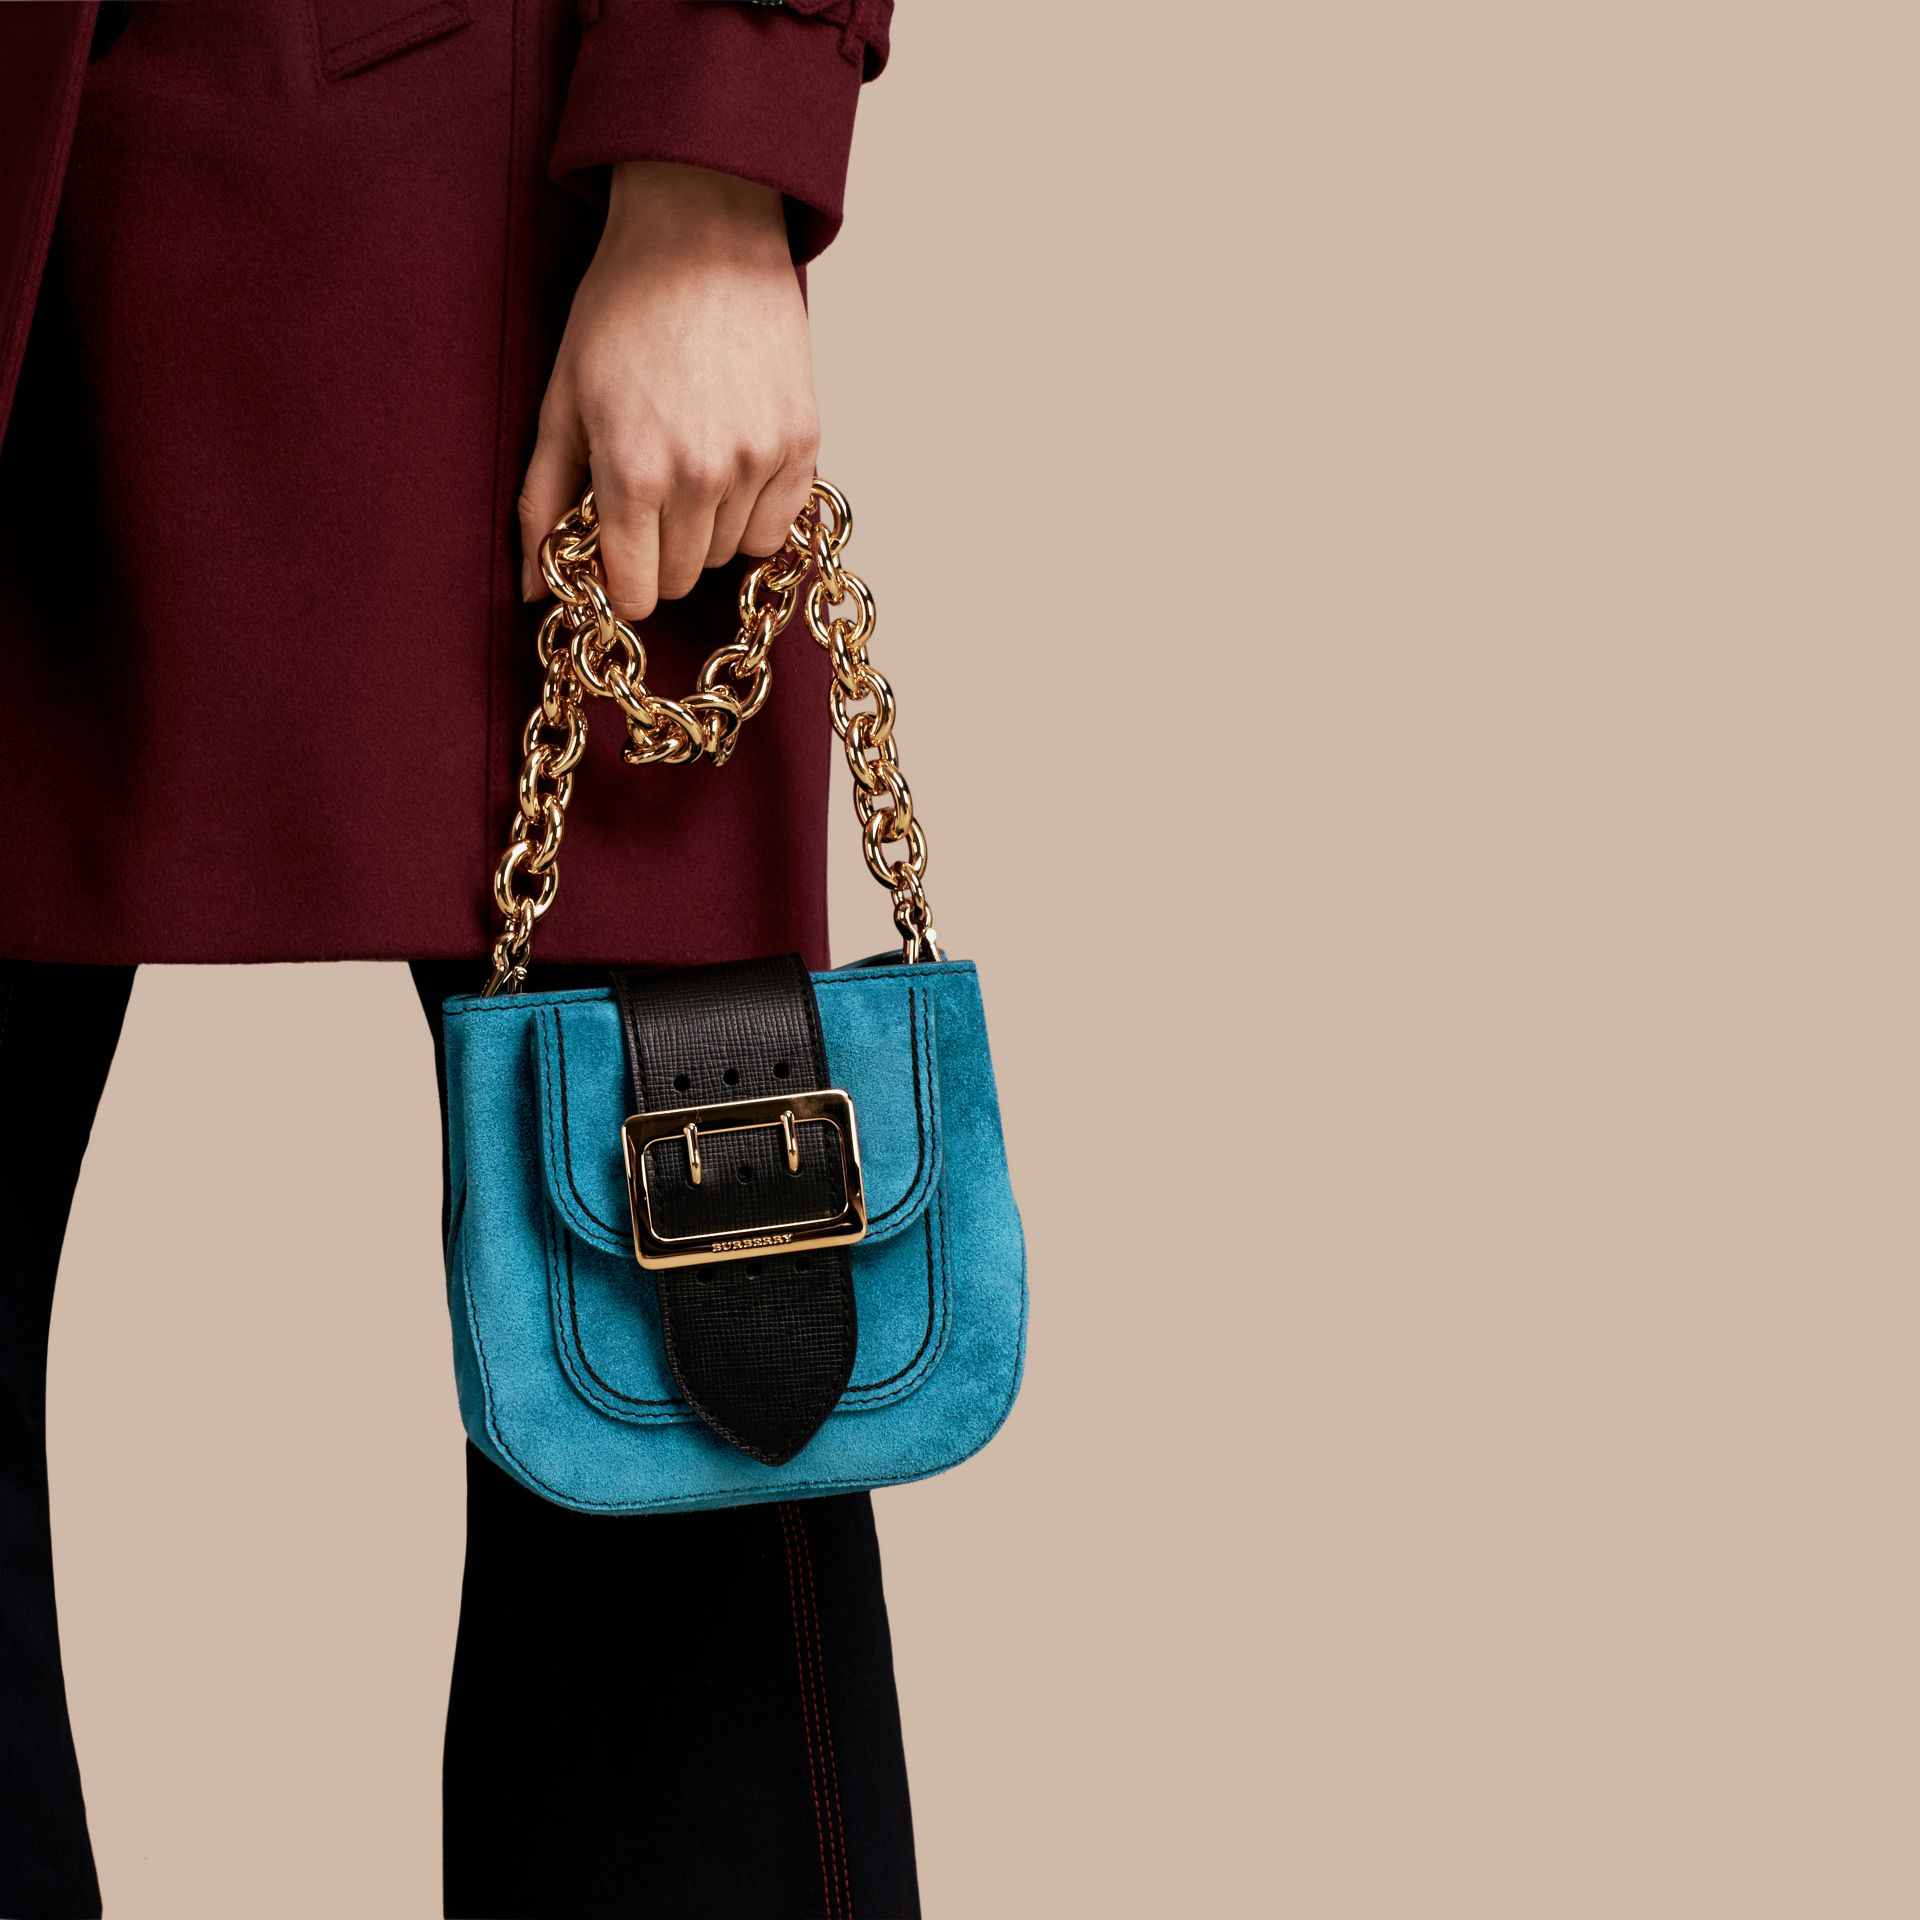 Peacock blue The Small Square Buckle Bag in Suede and Leather Peacock Blue - gallery image 3